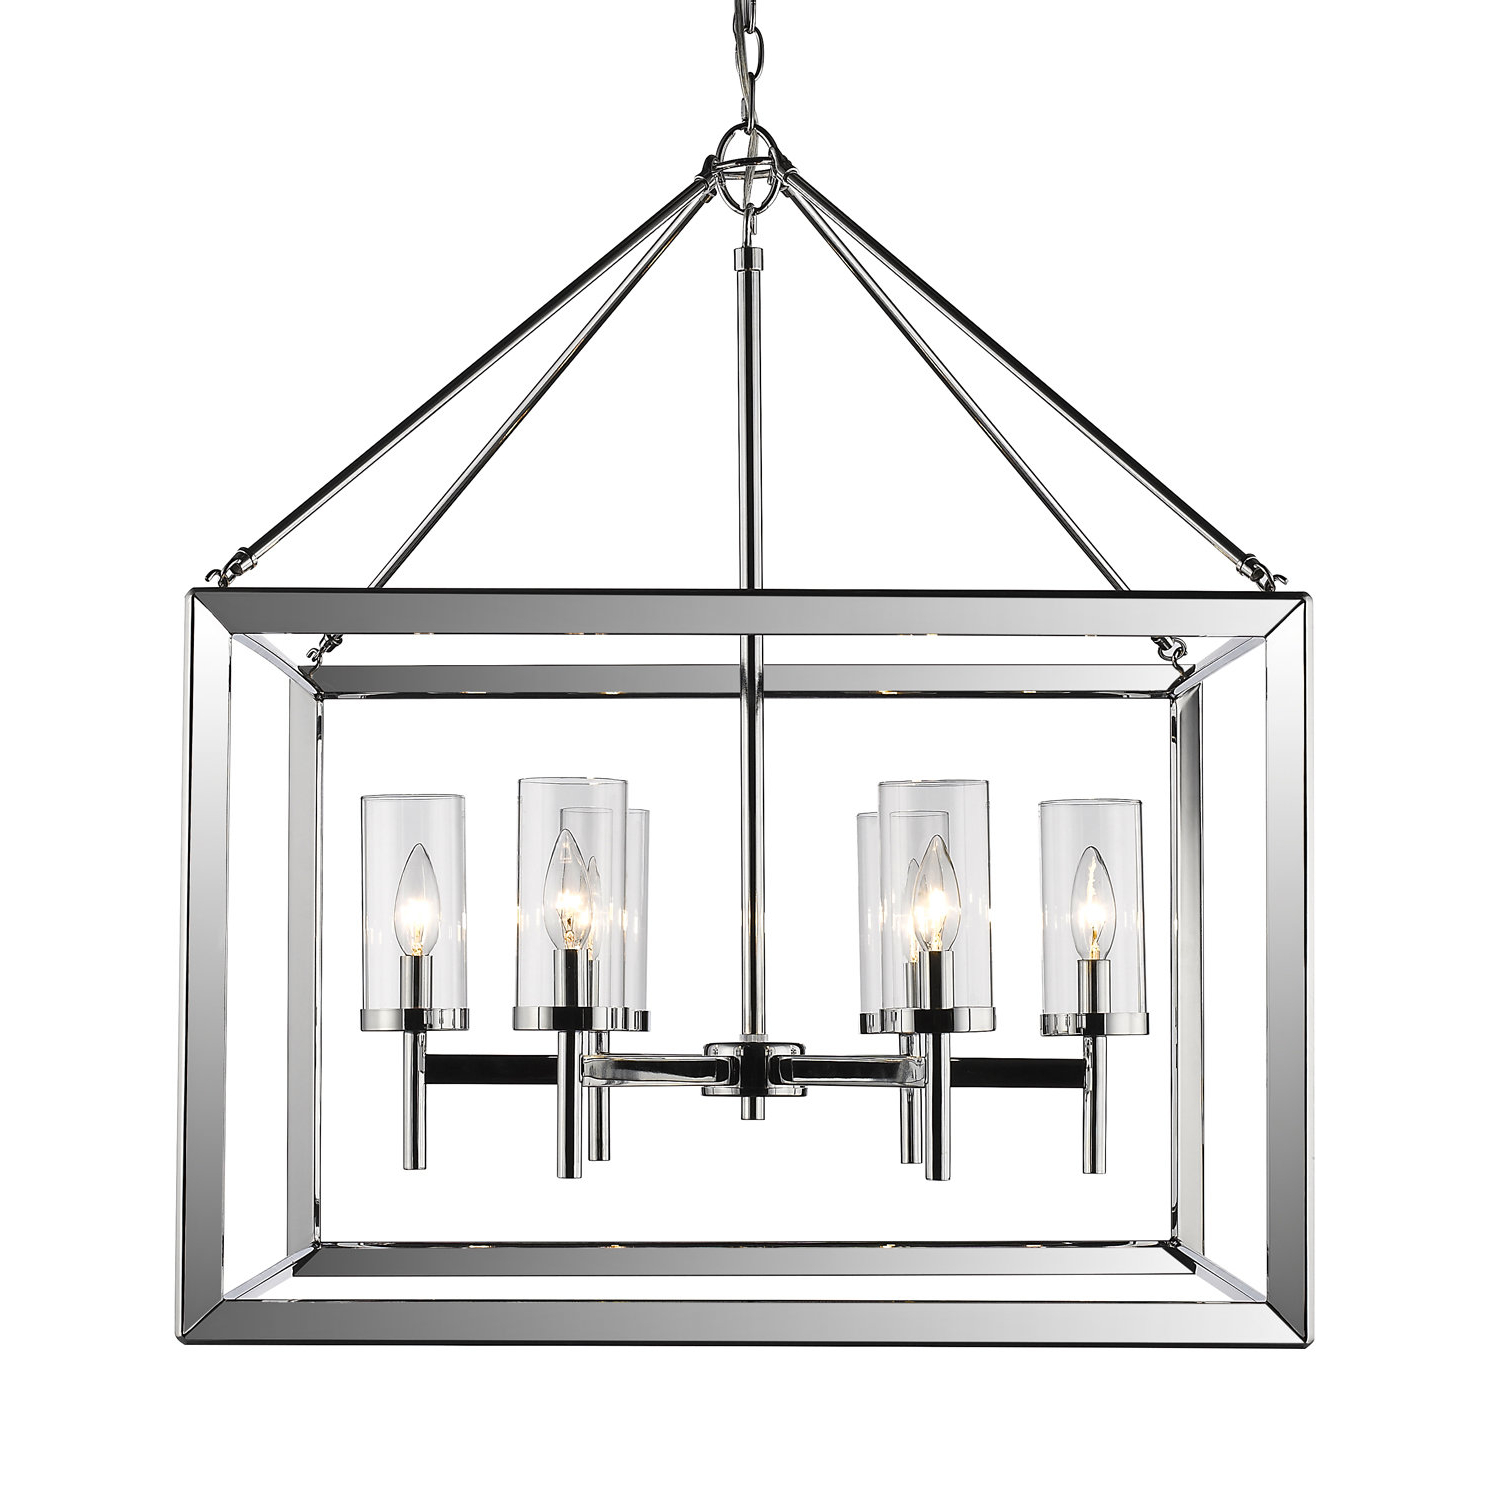 2019 Thorne 6 Light Lantern Square / Rectangle Pendants Inside Three Posts Thorne 6 Light Lantern Pendant & Reviews (View 1 of 20)